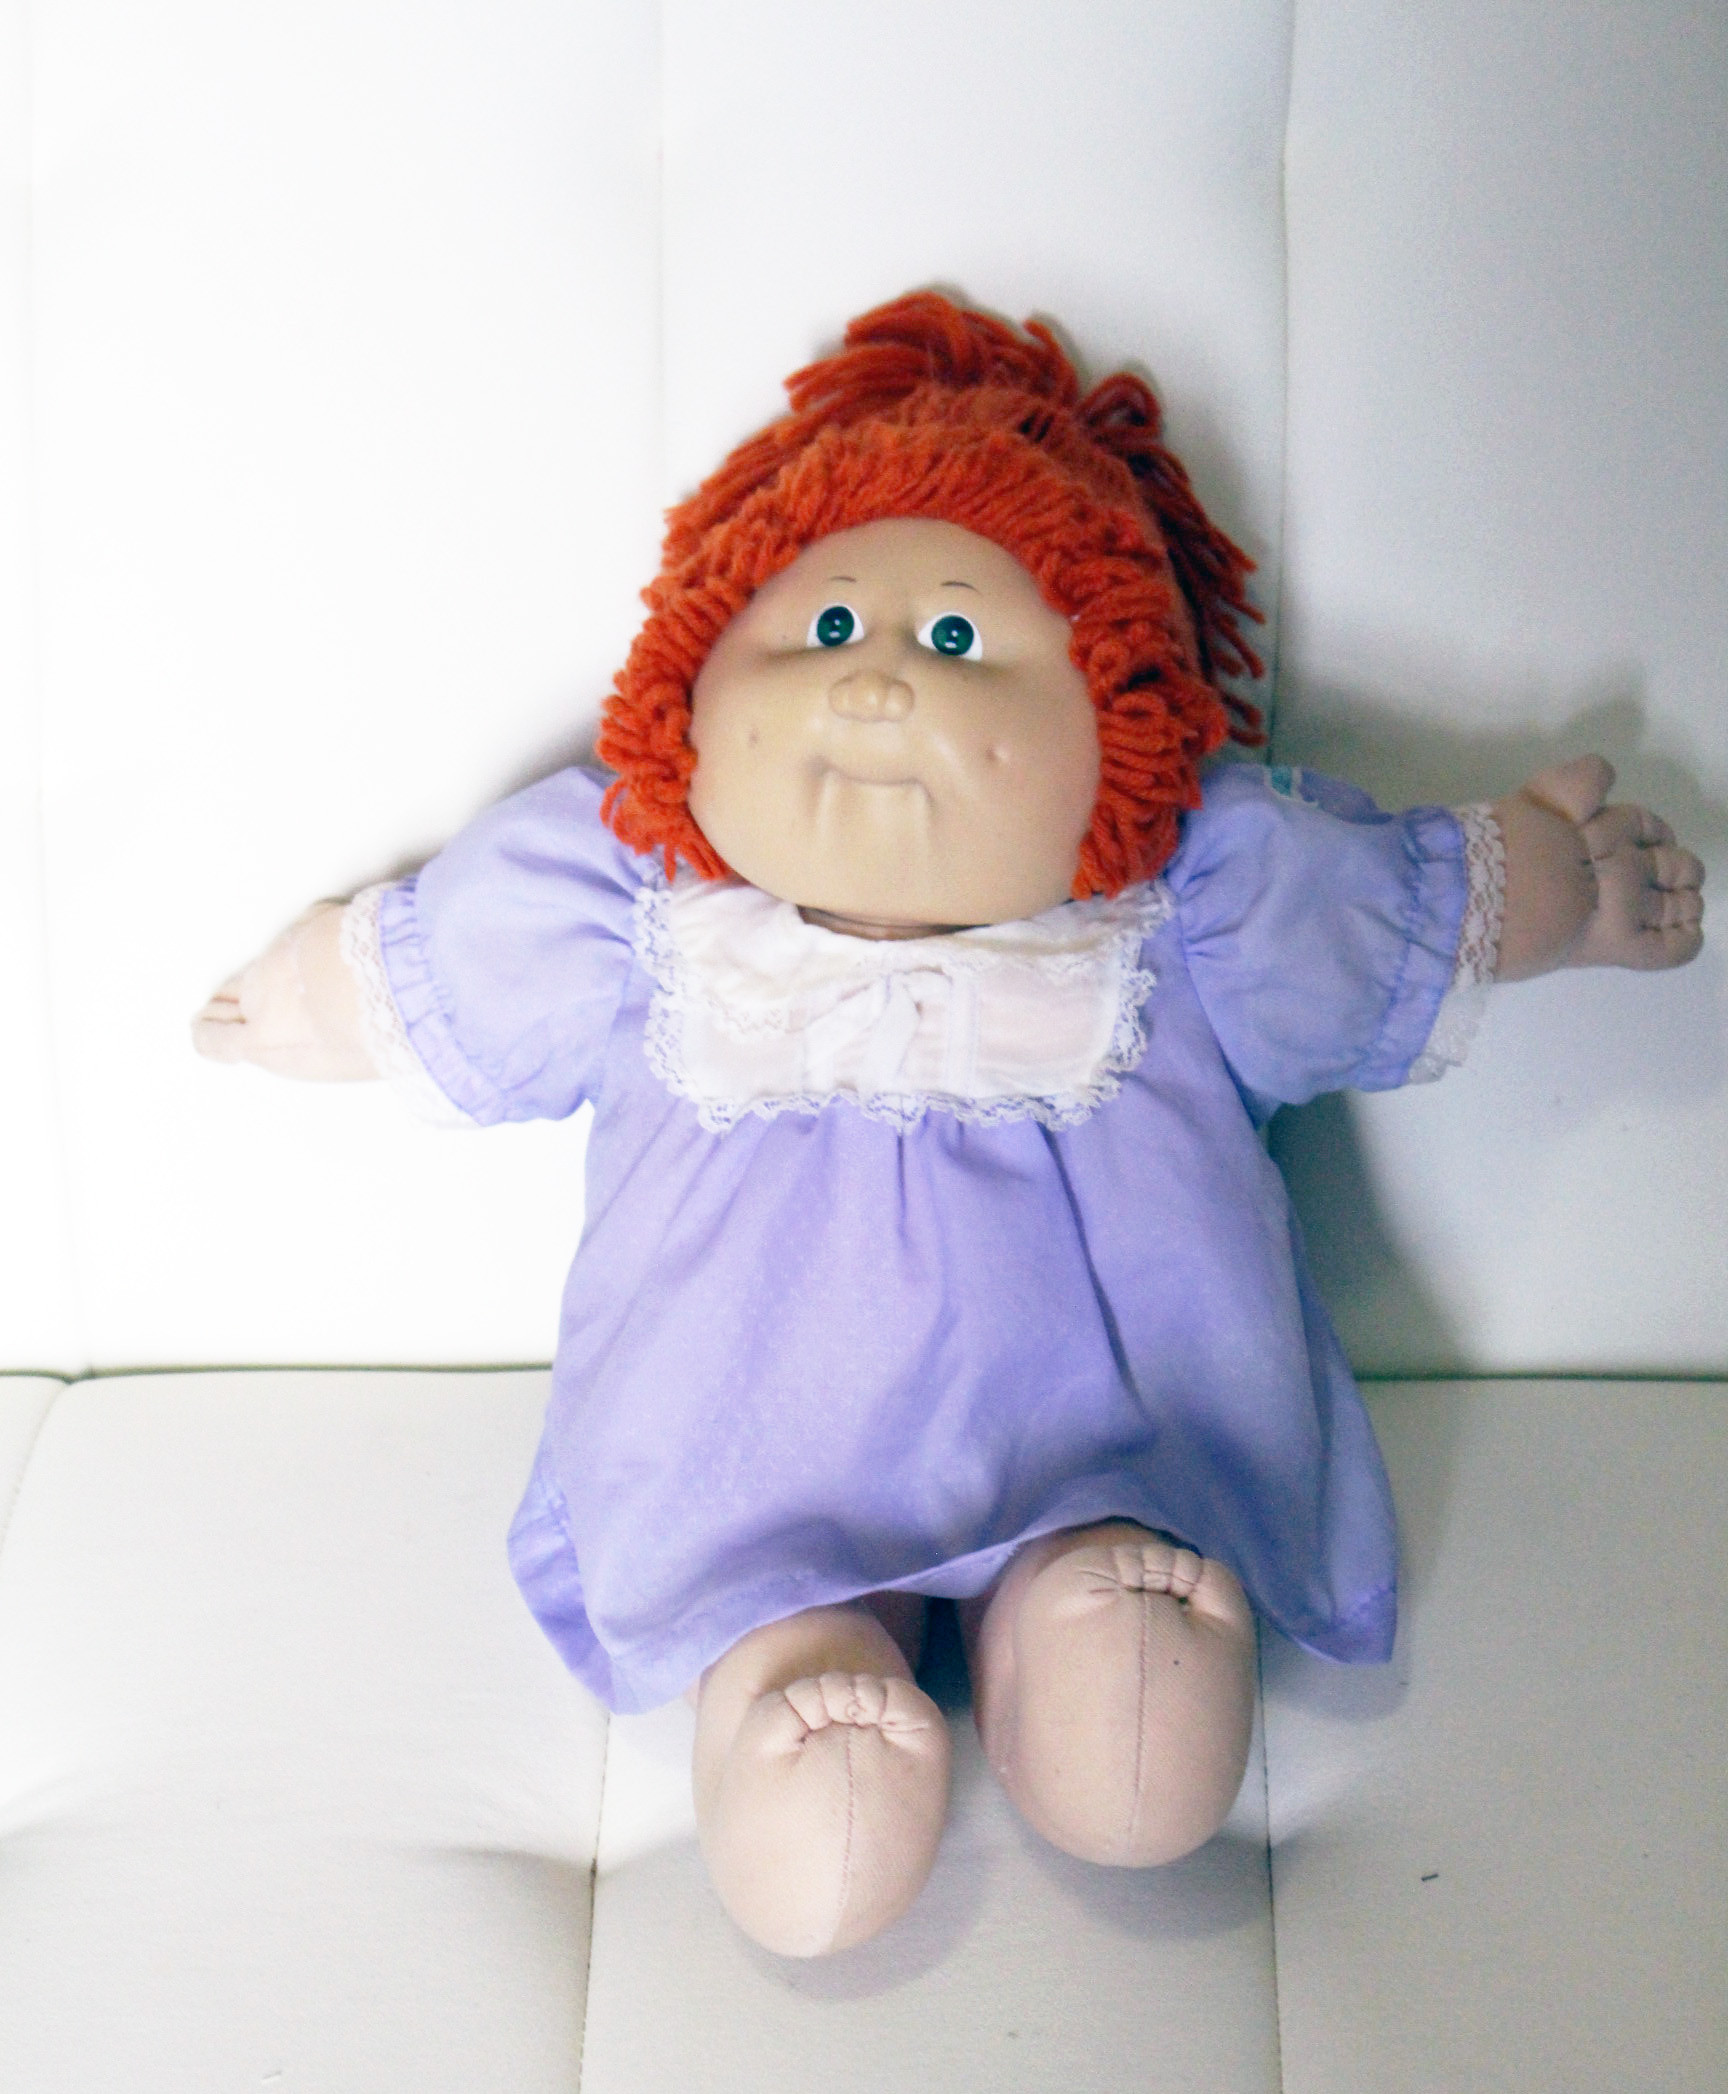 ORIGINAL RED HAIRED CABBAGE PATCH KIDS DOLL XAVIER ROBERTS